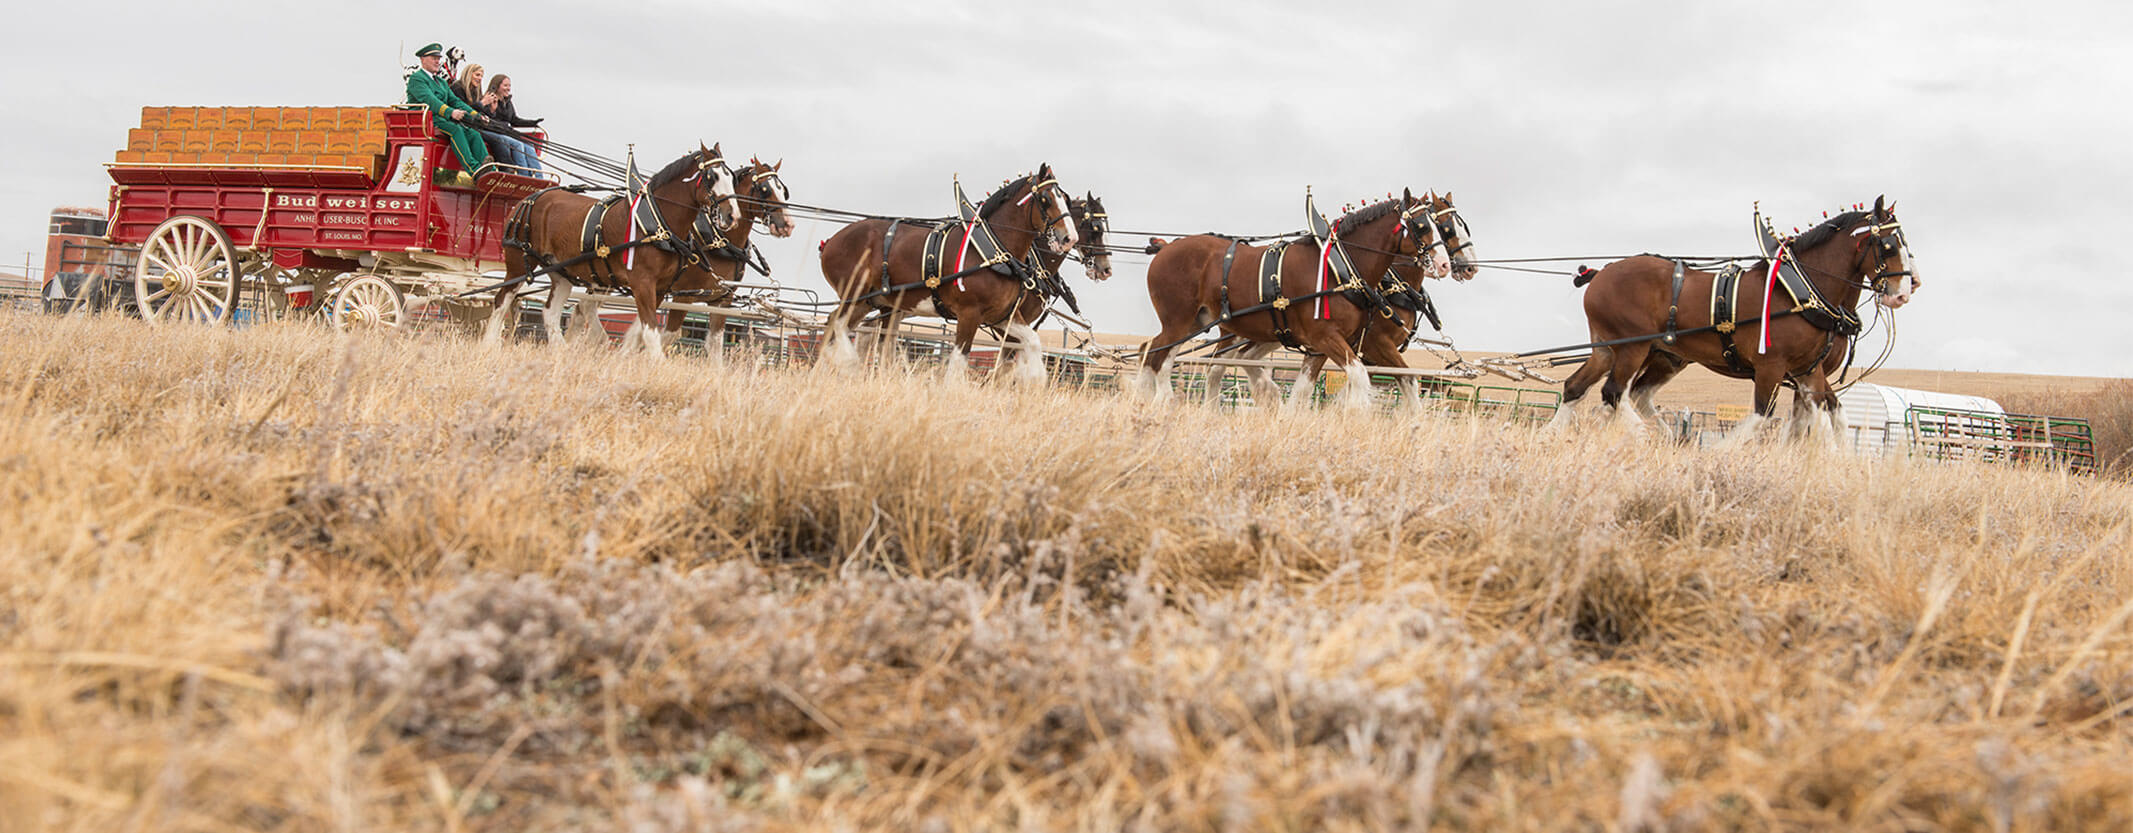 Clydesdale Horses Pulling A Wagon Across A Field